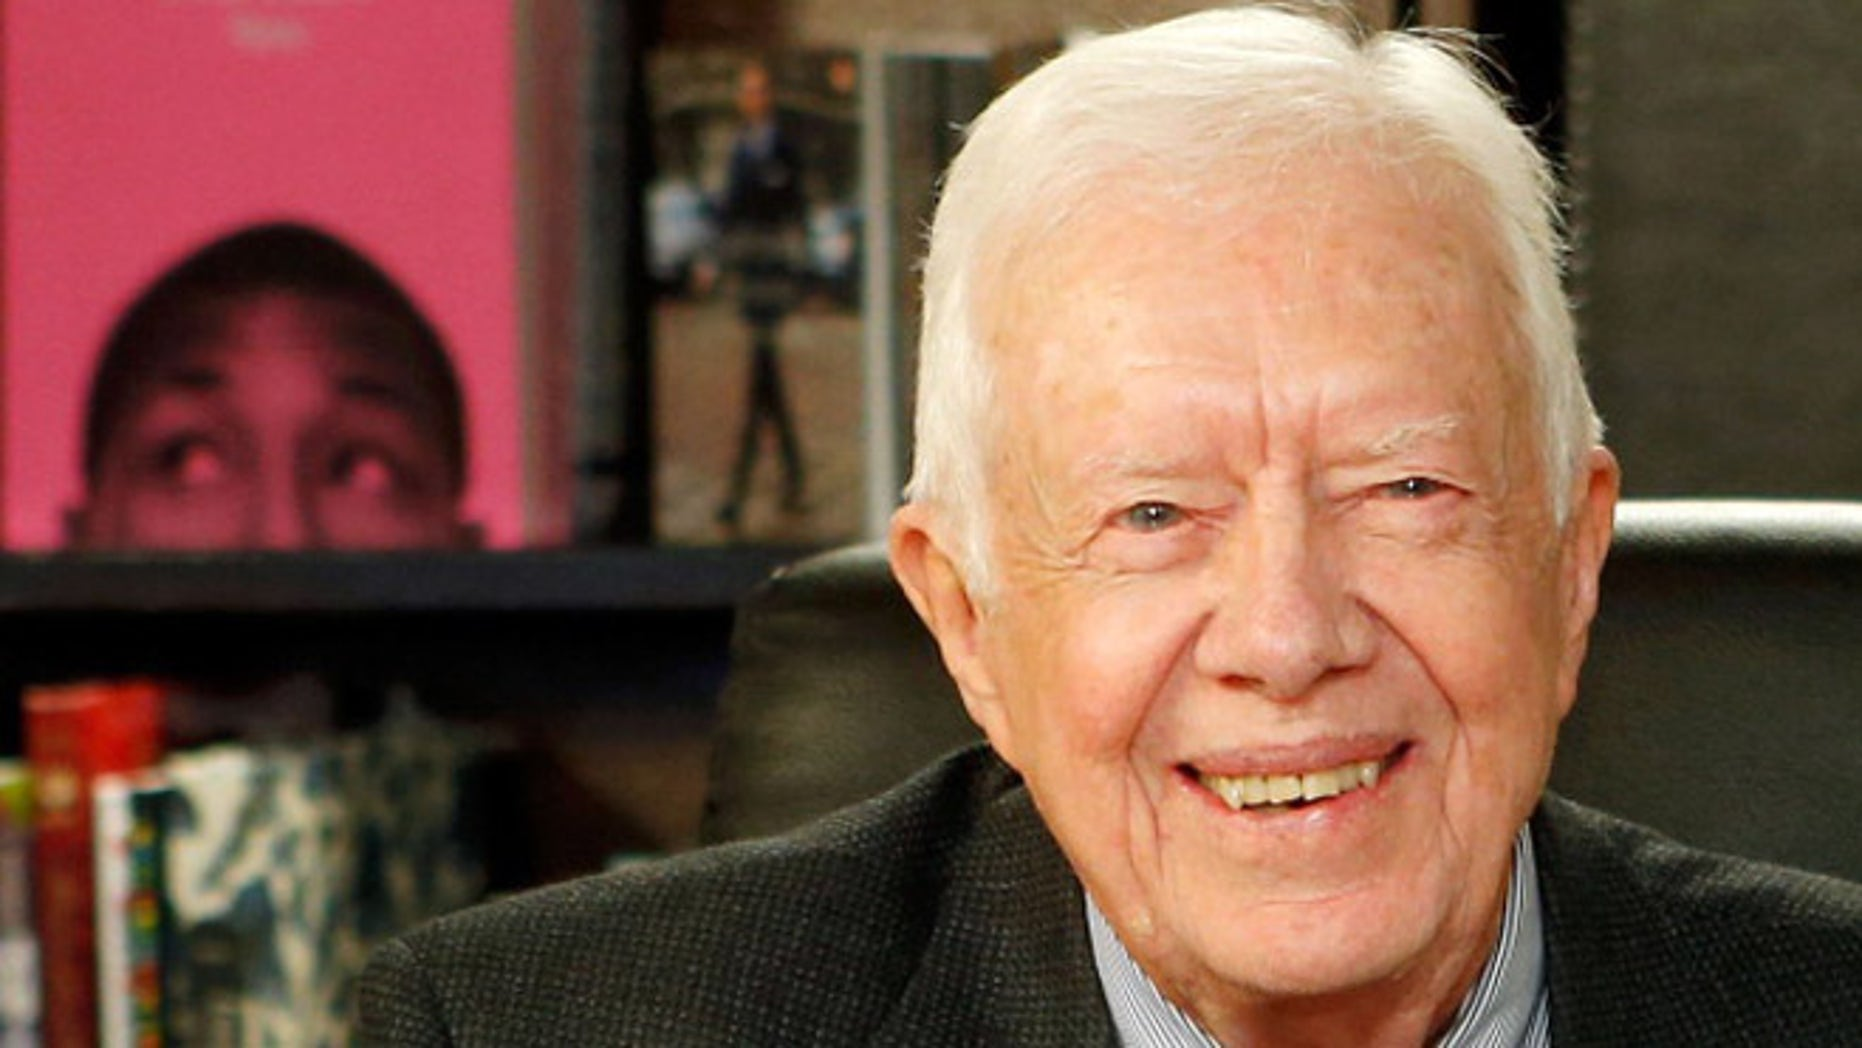 Former US President Jimmy Carter poses for a photo as he promotes his new book at Barnes & Noble, 5th Avenue on March 25, 2014 in New York City.